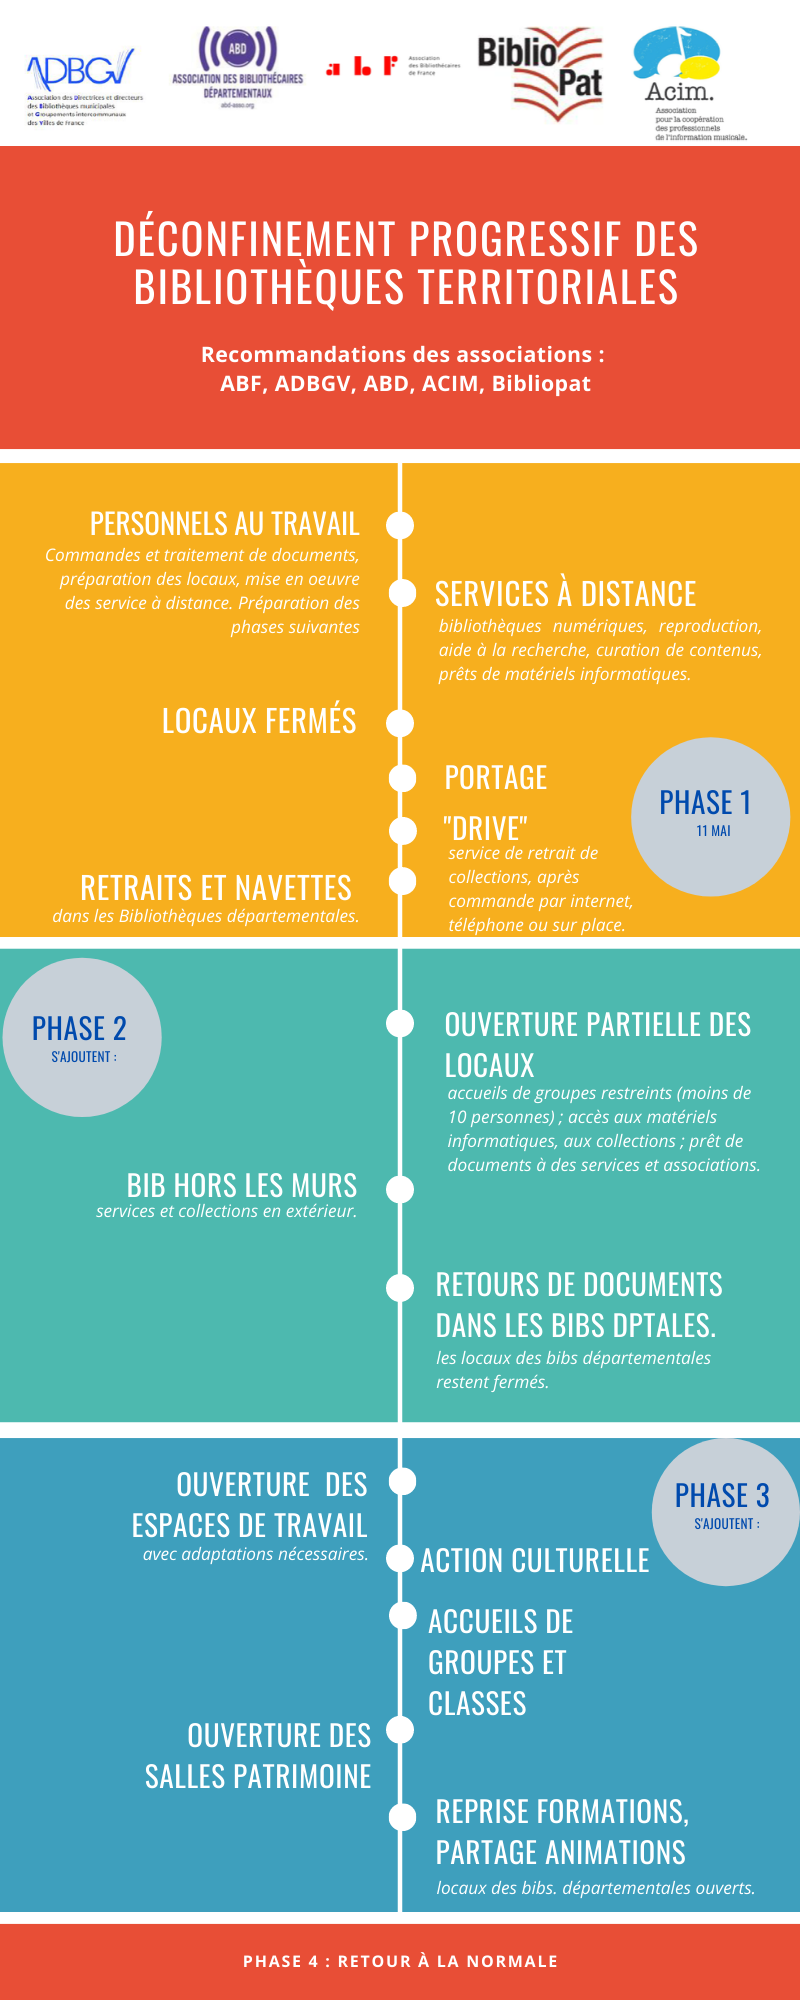 infographie phases deconfinement bibliotheque